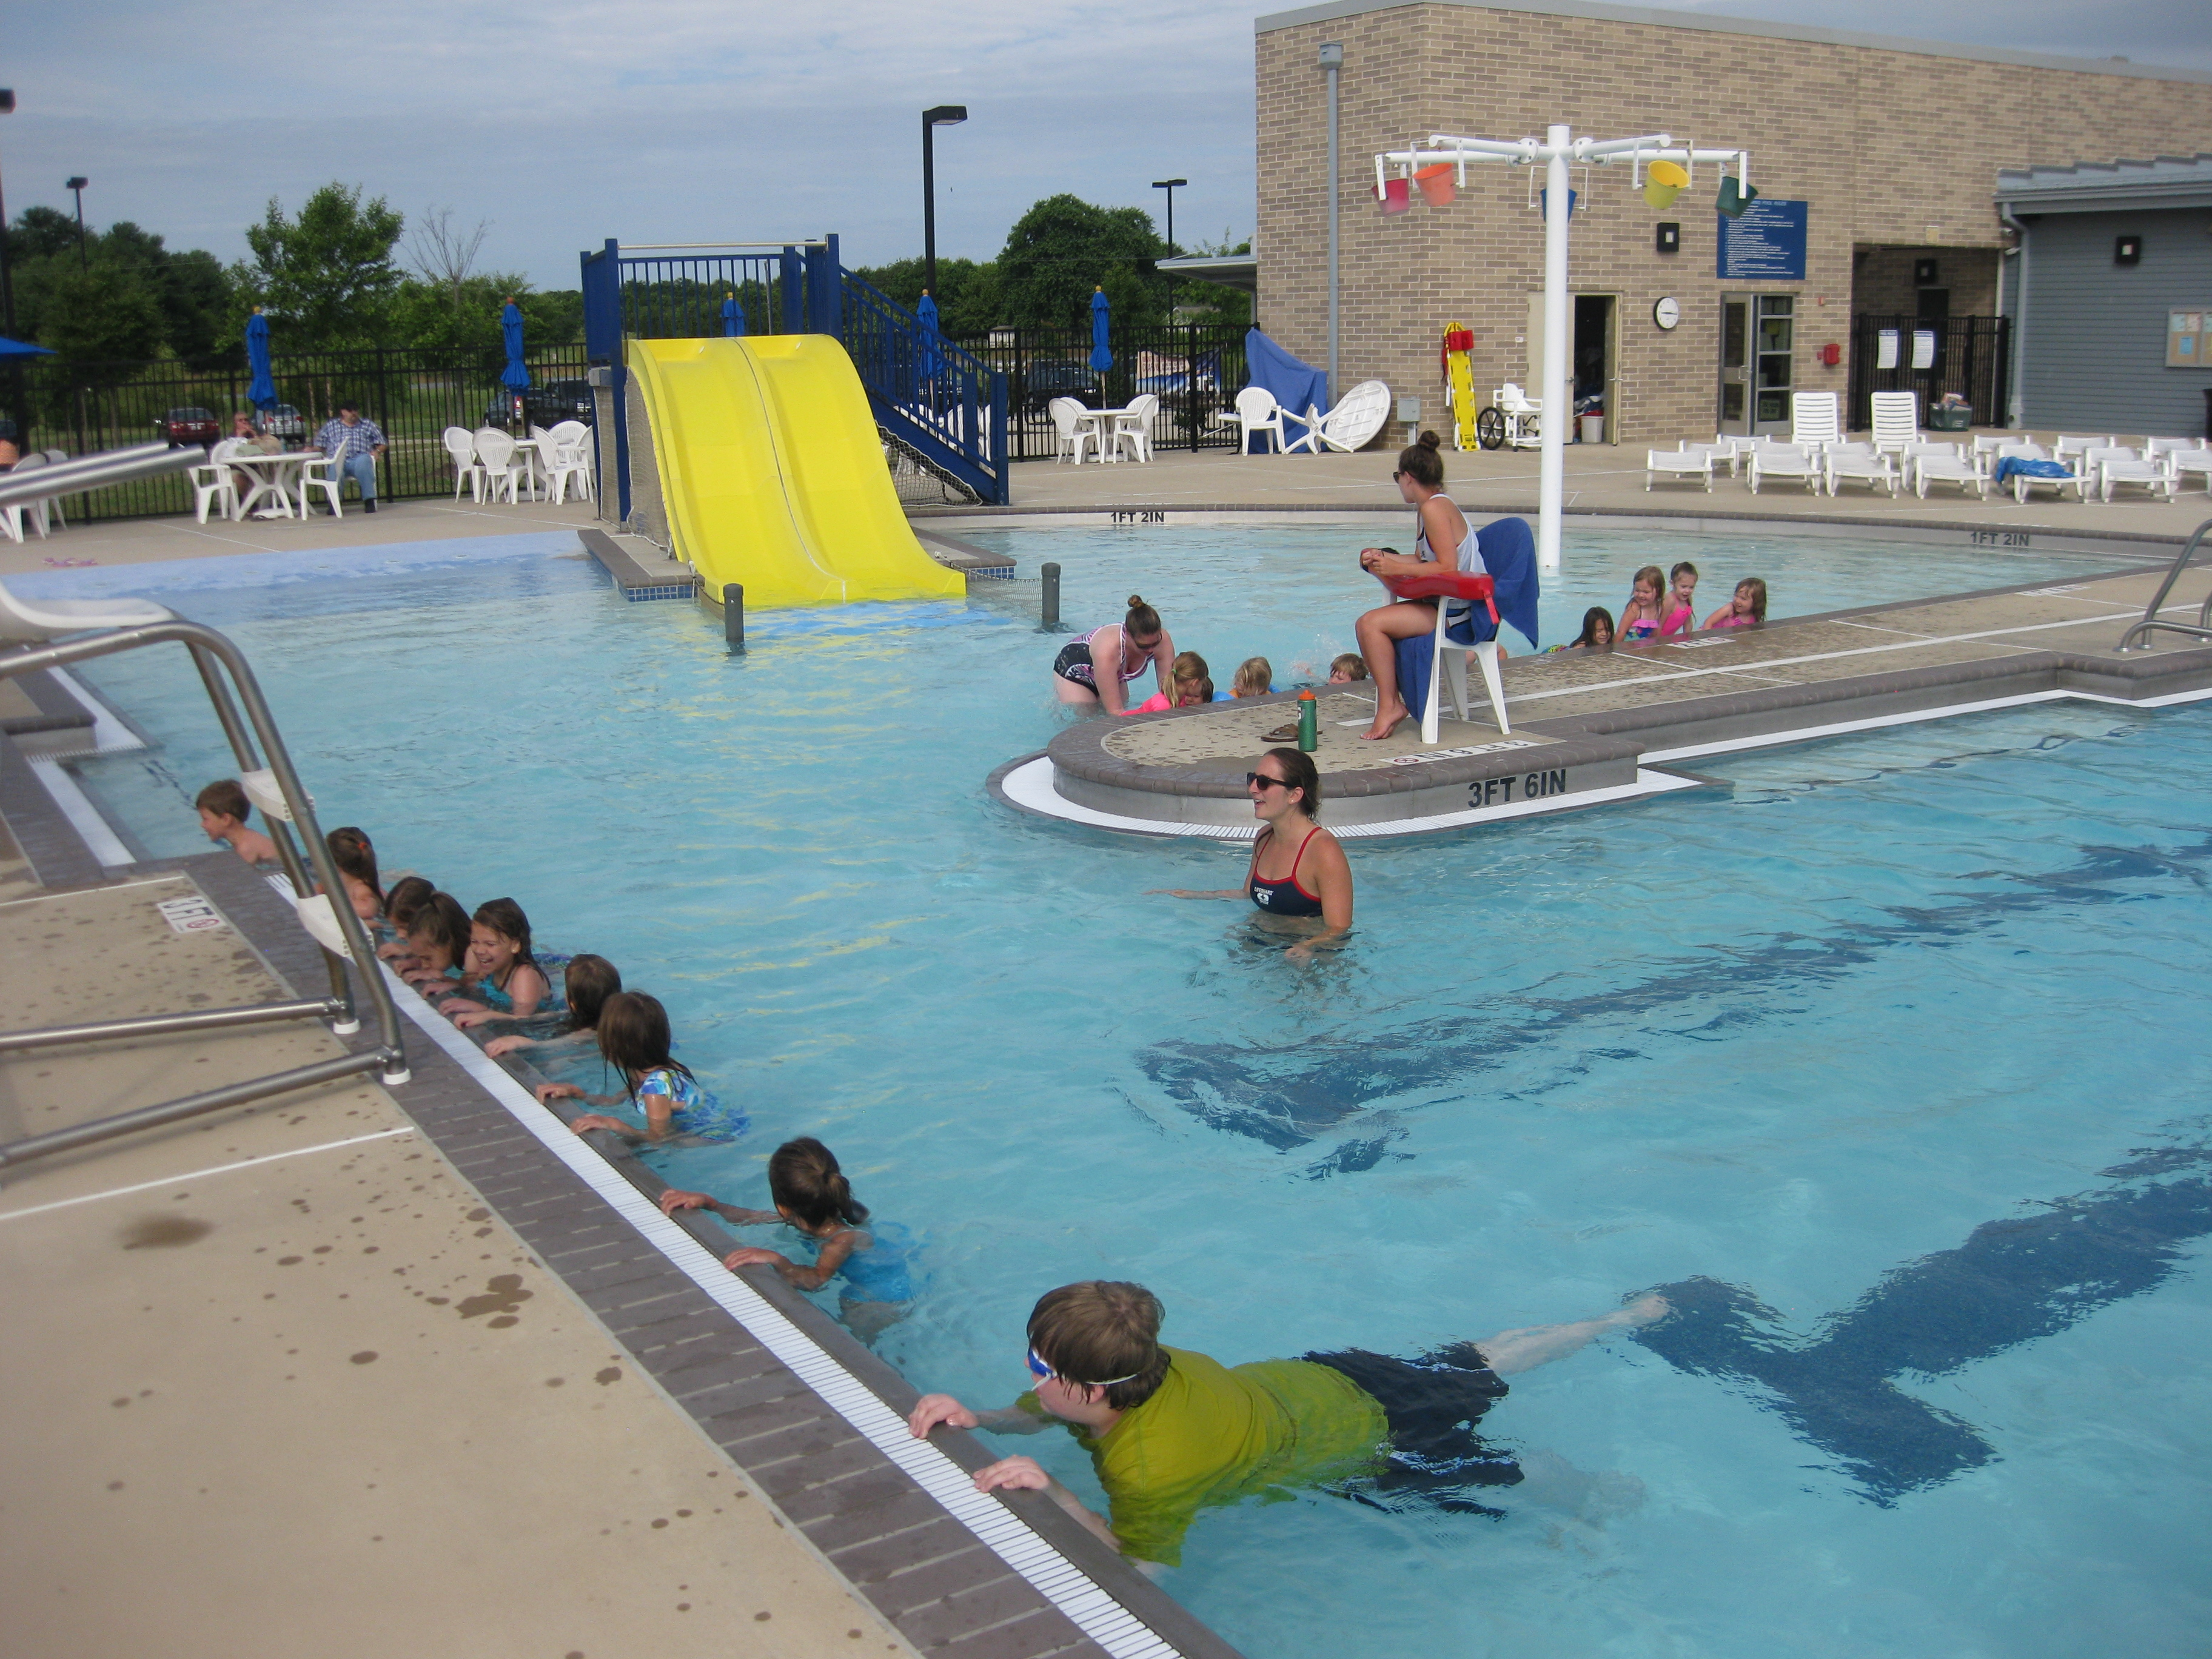 Kcpr community center pool - Campsites in kent with swimming pool ...